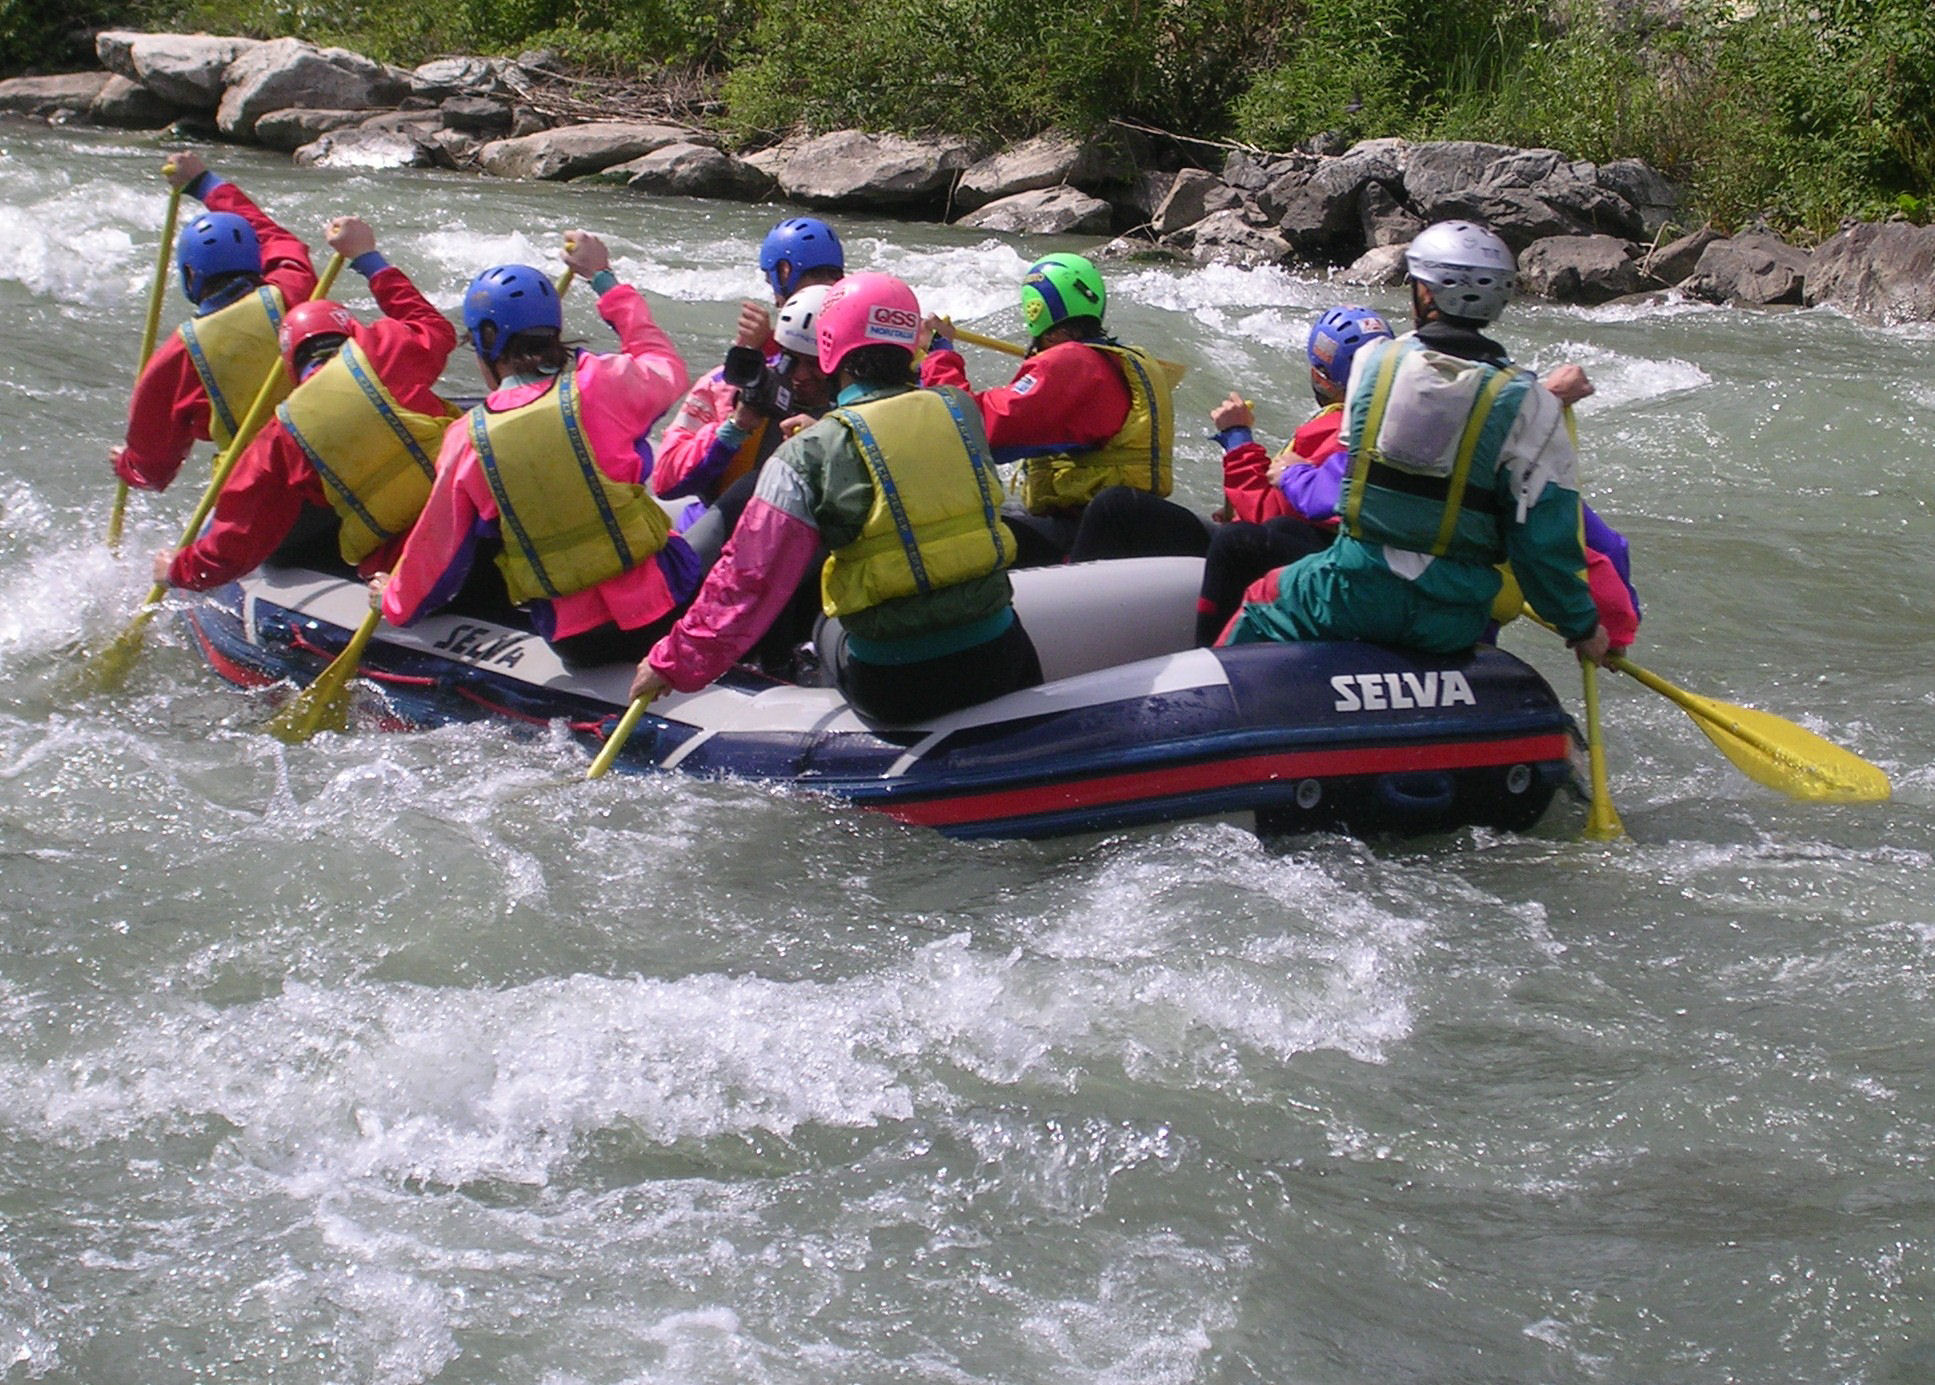 Rafting and extreme sports in Valtellina